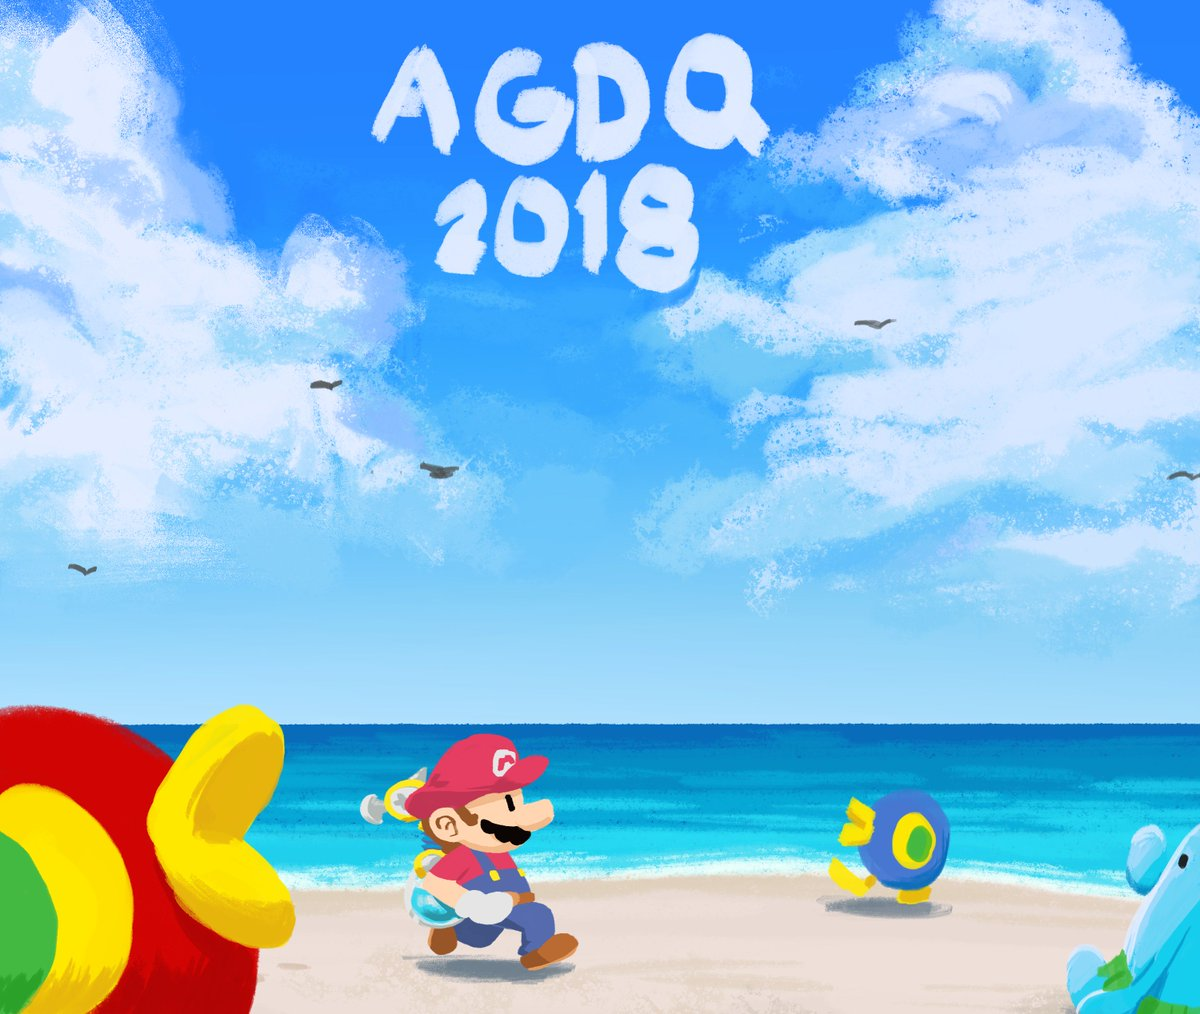 RT @ChipsGoWOAH: #AGDQ2018 Super Mario Sunshine https://t.co/x9LmXe3GCB